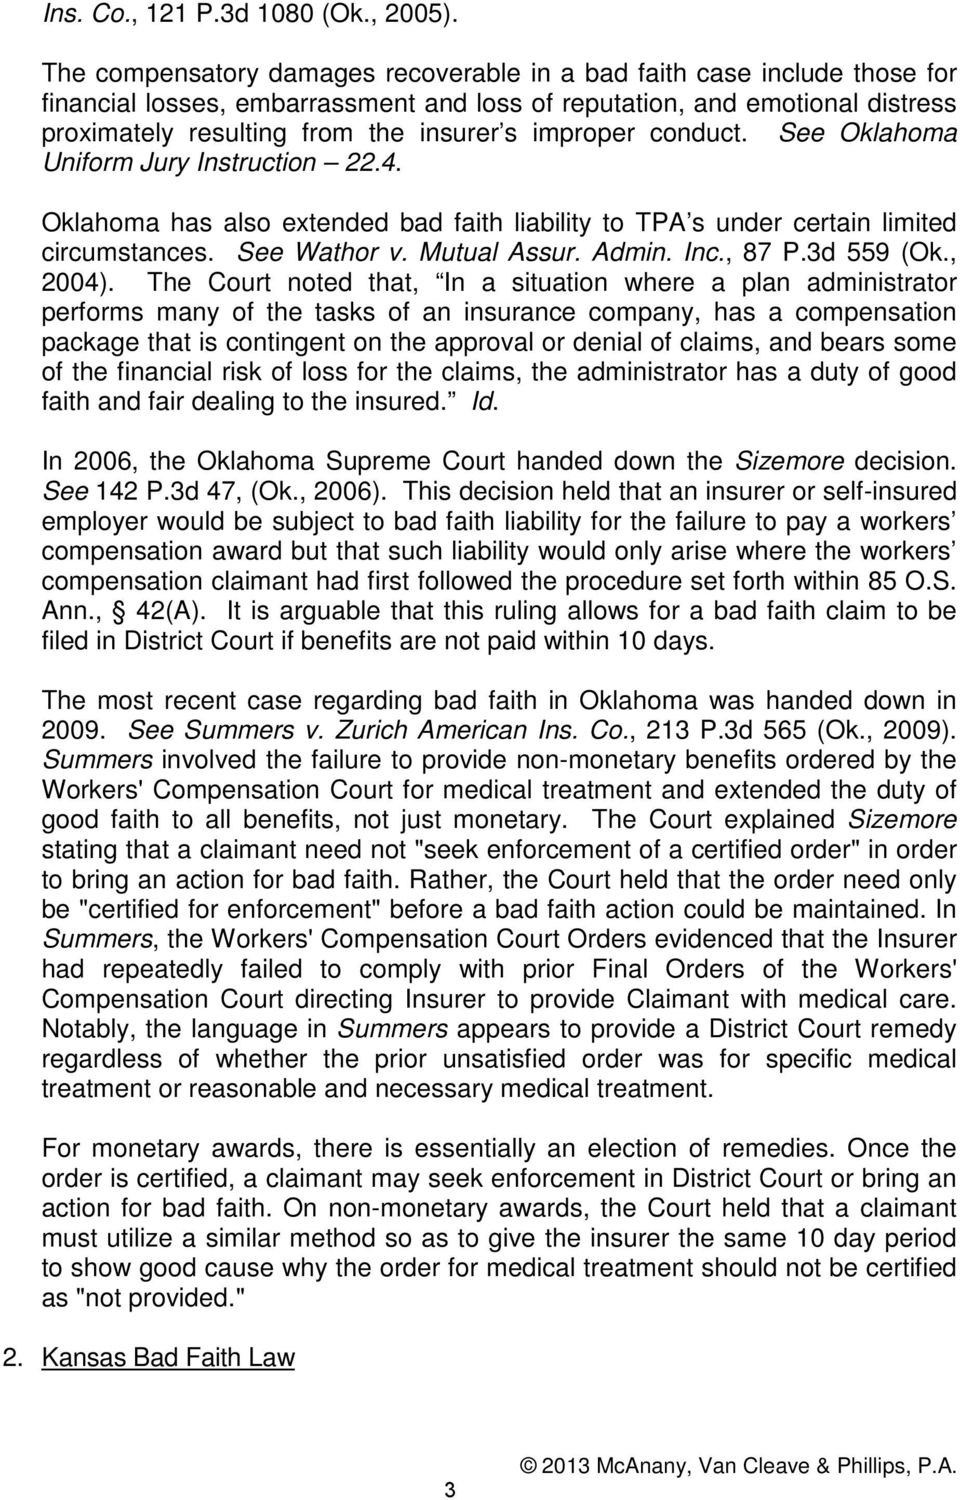 improper conduct. See Oklahoma Uniform Jury Instruction 22.4. Oklahoma has also extended bad faith liability to TPA s under certain limited circumstances. See Wathor v. Mutual Assur. Admin. Inc.